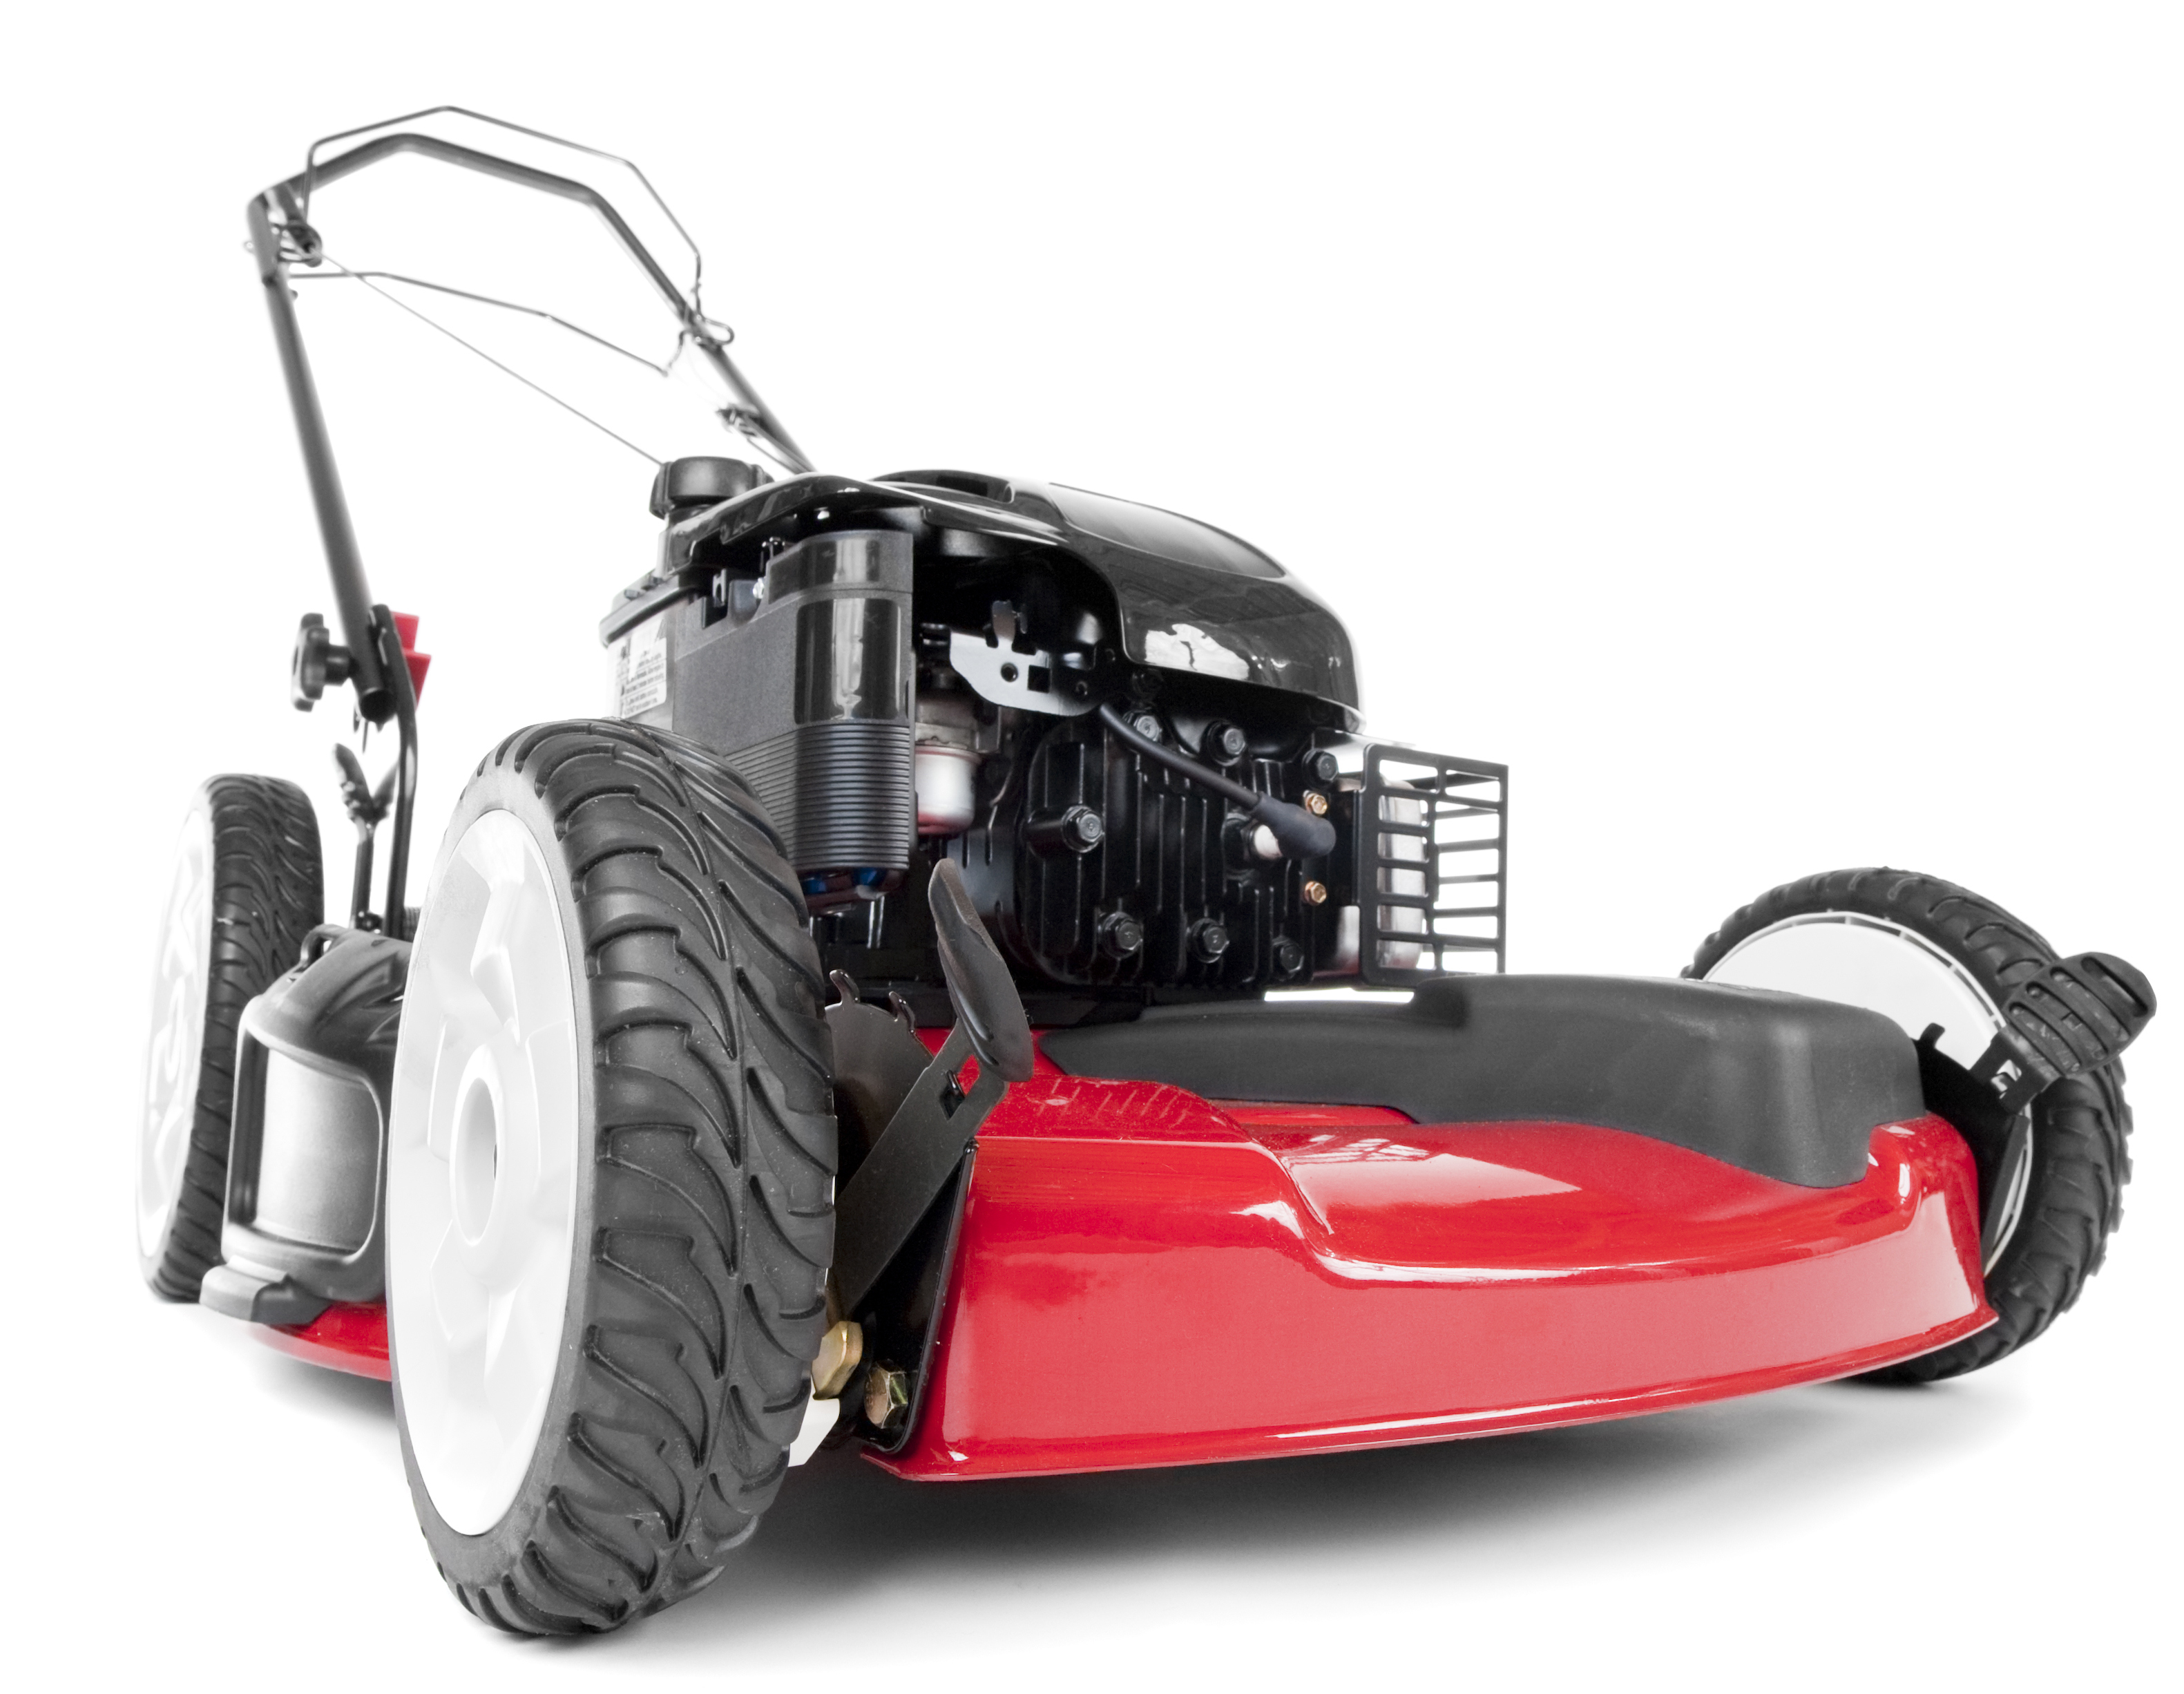 Lawn Mower London Ontario Further Settlement Reached In Canadian Lawn Mowers Class Action